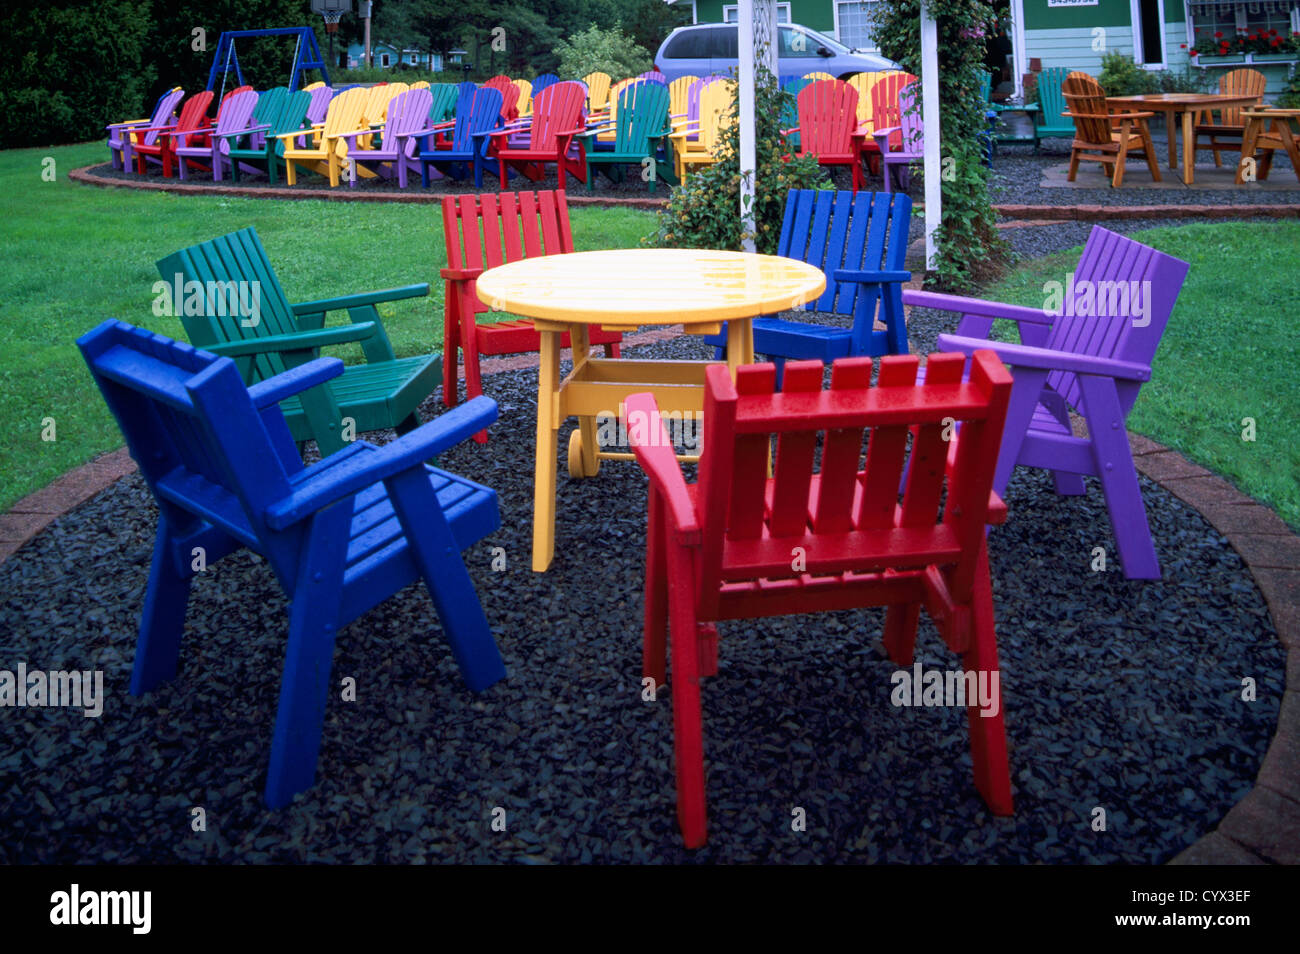 Nova Scotia, Canada - Colorful Painted Wood Patio Furniture and Adirondack  Chairs for Sale, made by Local Chair Maker - Nova Scotia, Canada - Colorful Painted Wood Patio Furniture And